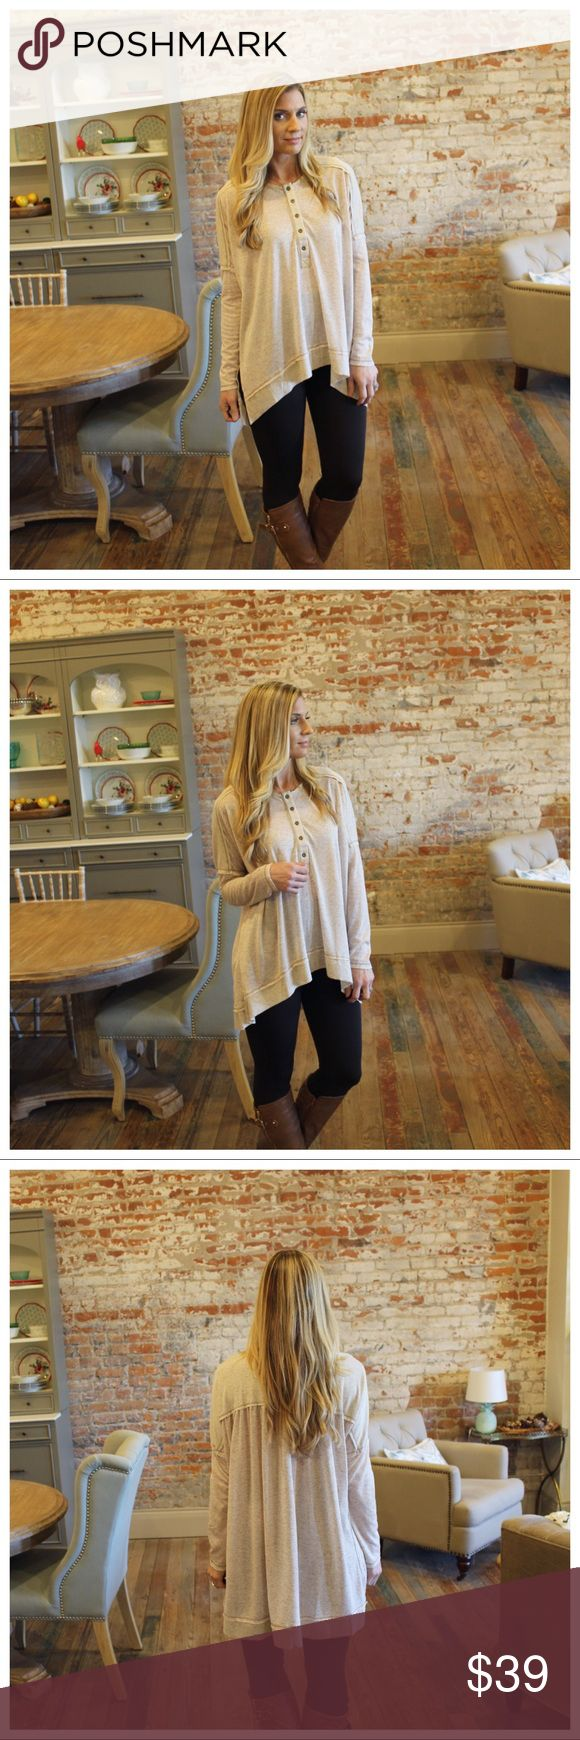 "Beige button up slouchy henley high low tunic Modeling size small.  92% polyester 8% linen.  Bust laying flat (dolman sleeve) S 26"" M 27"" L 28"" Length S 27/32"" M 28/33"" L 29/34"". Add to bundle to save when purchasing.  FG9221201.HT10040 Tops Tunics"